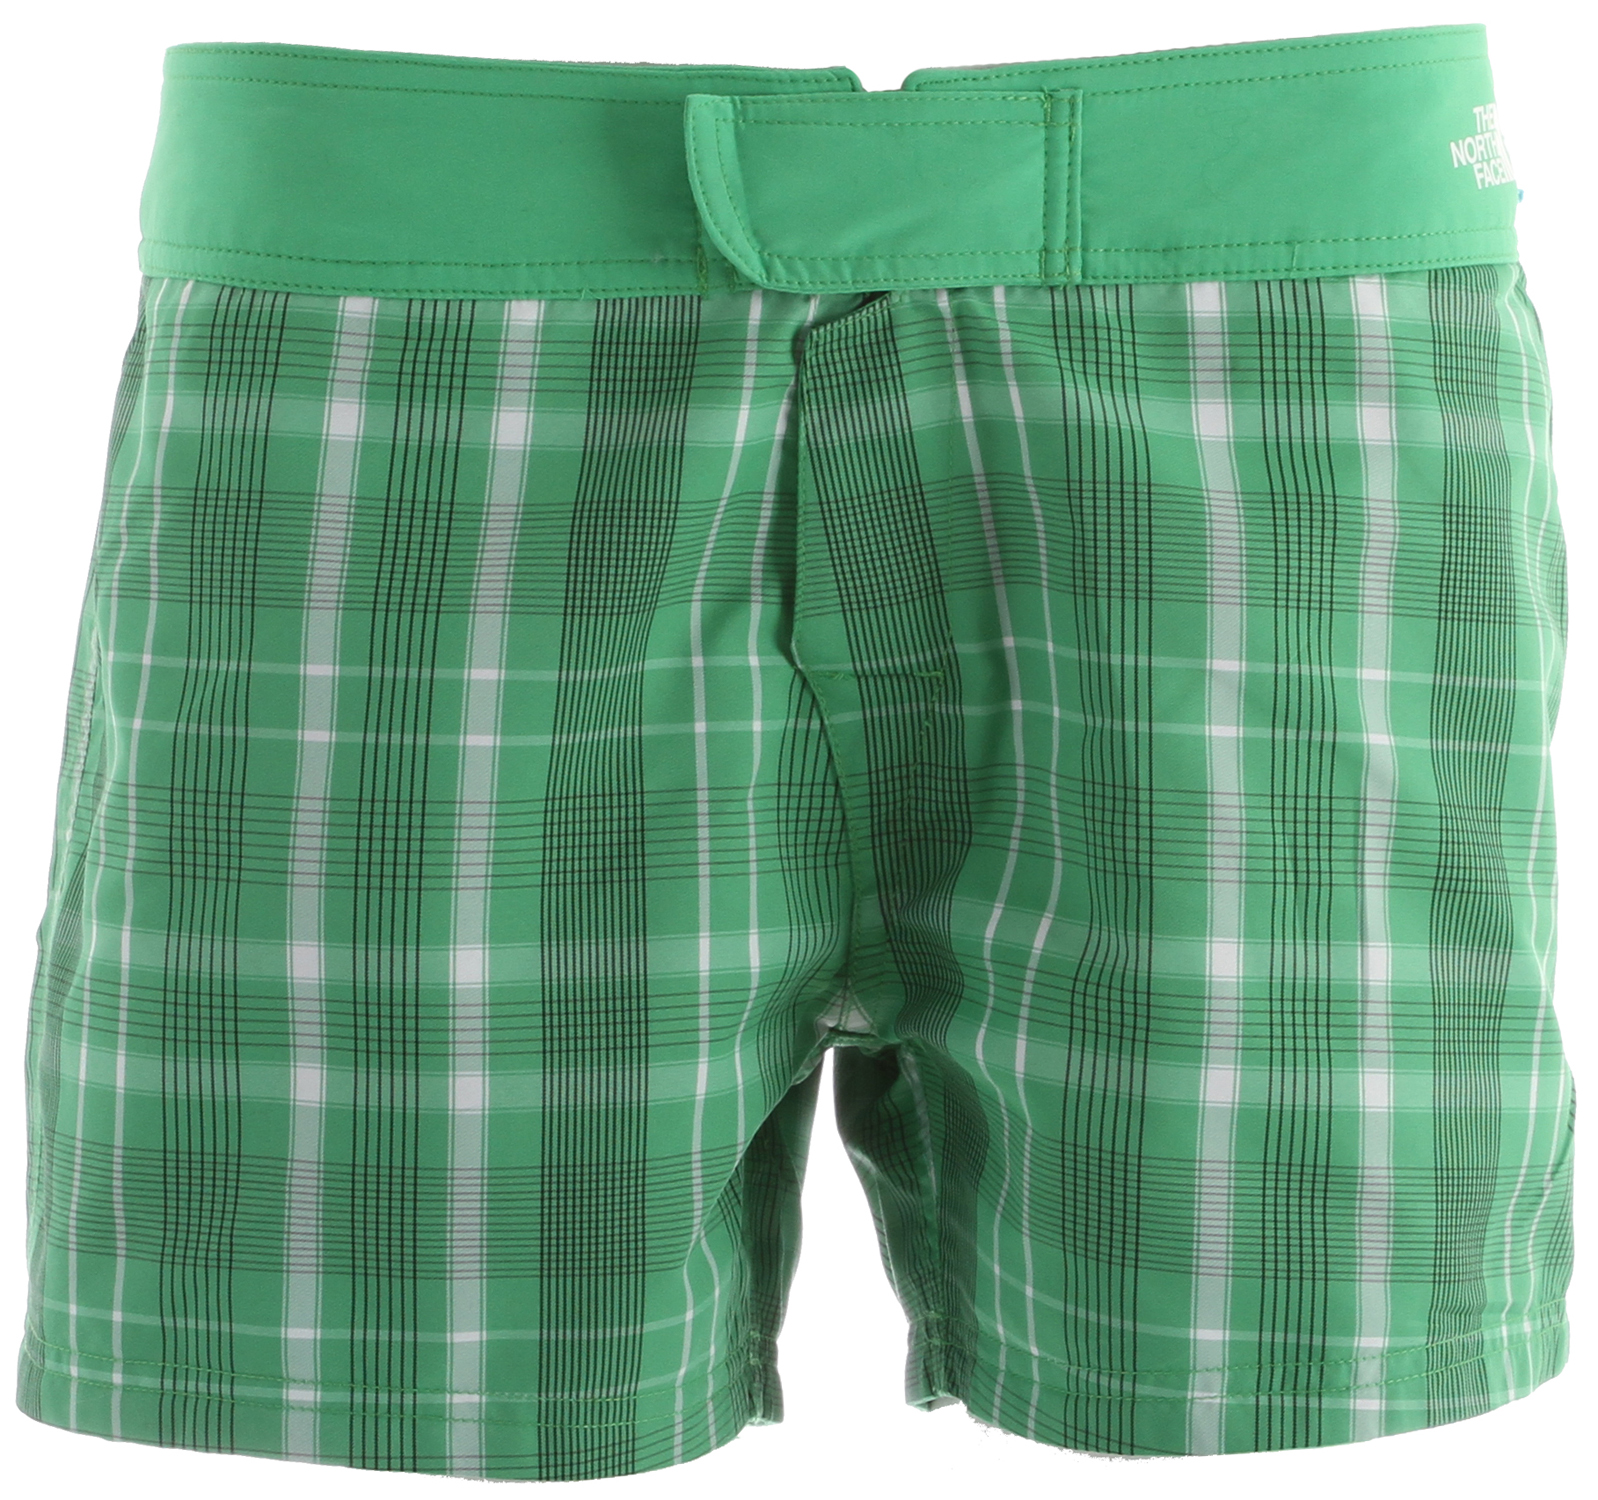 Surf The North Face Reversible Trunk Shorts Mojito Green Plaid - $34.95